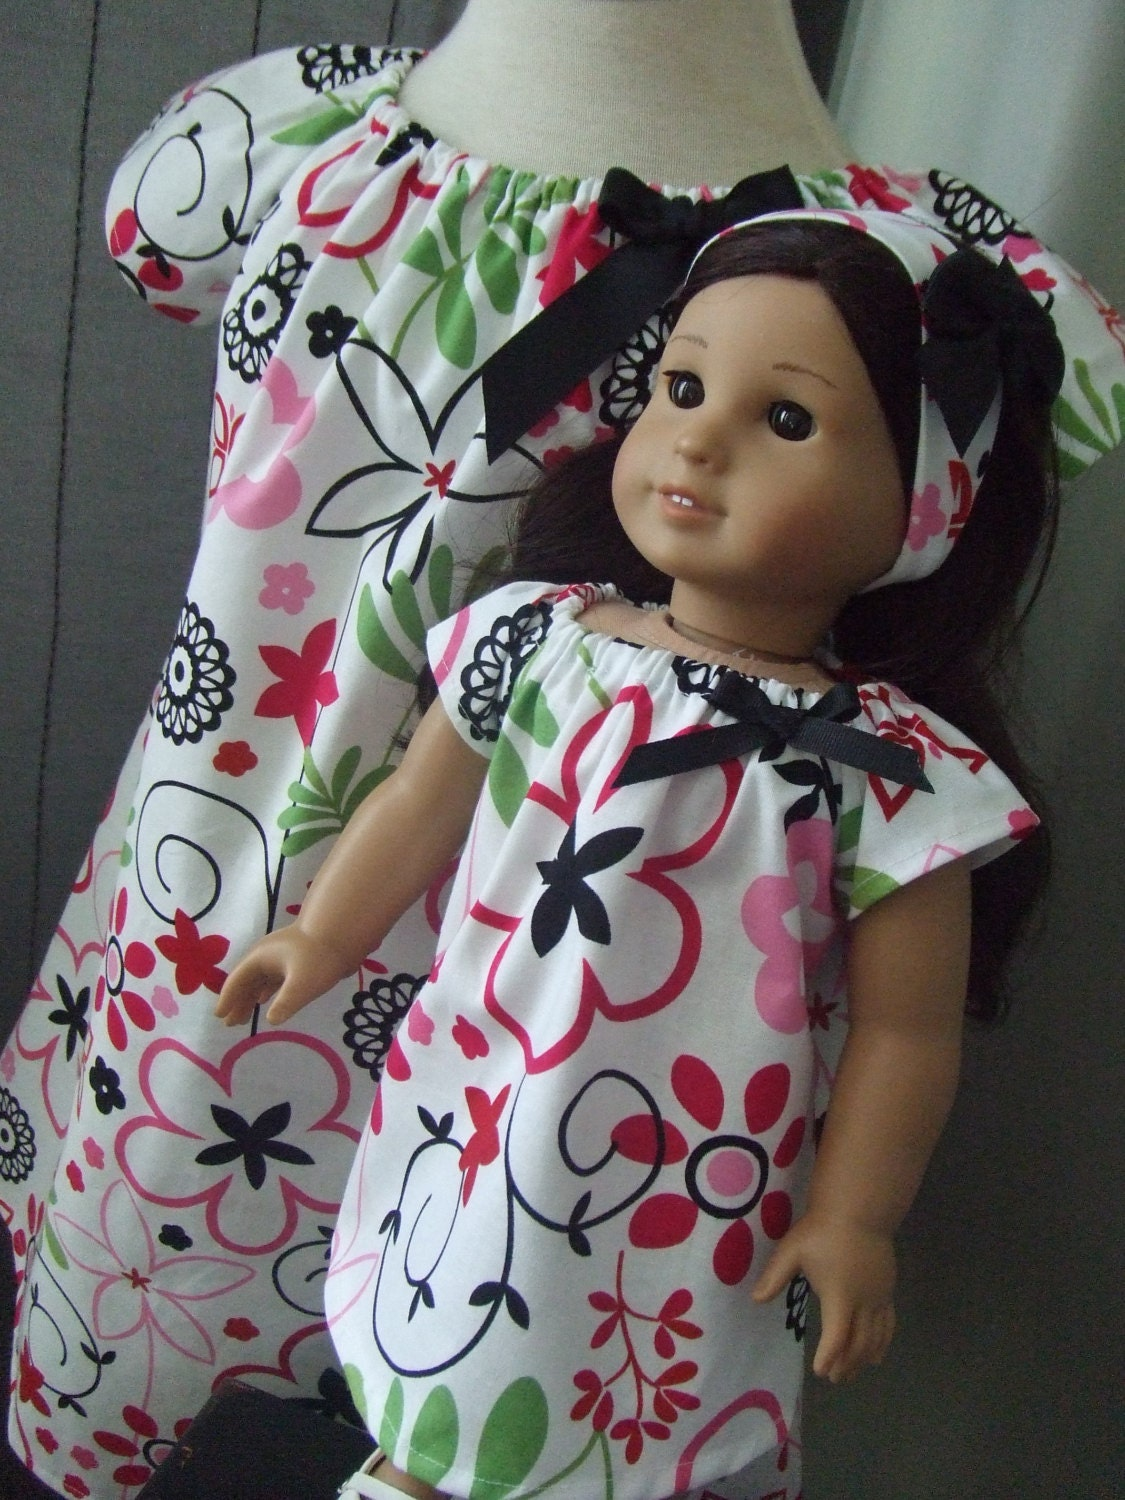 Home>Doll Dress Ups>Child and Matching Doll Dress Sets We've created discounted sets for little girls to dress up to match their dolls! Comfortable Princess Dresses for girls and durable dresses for 18